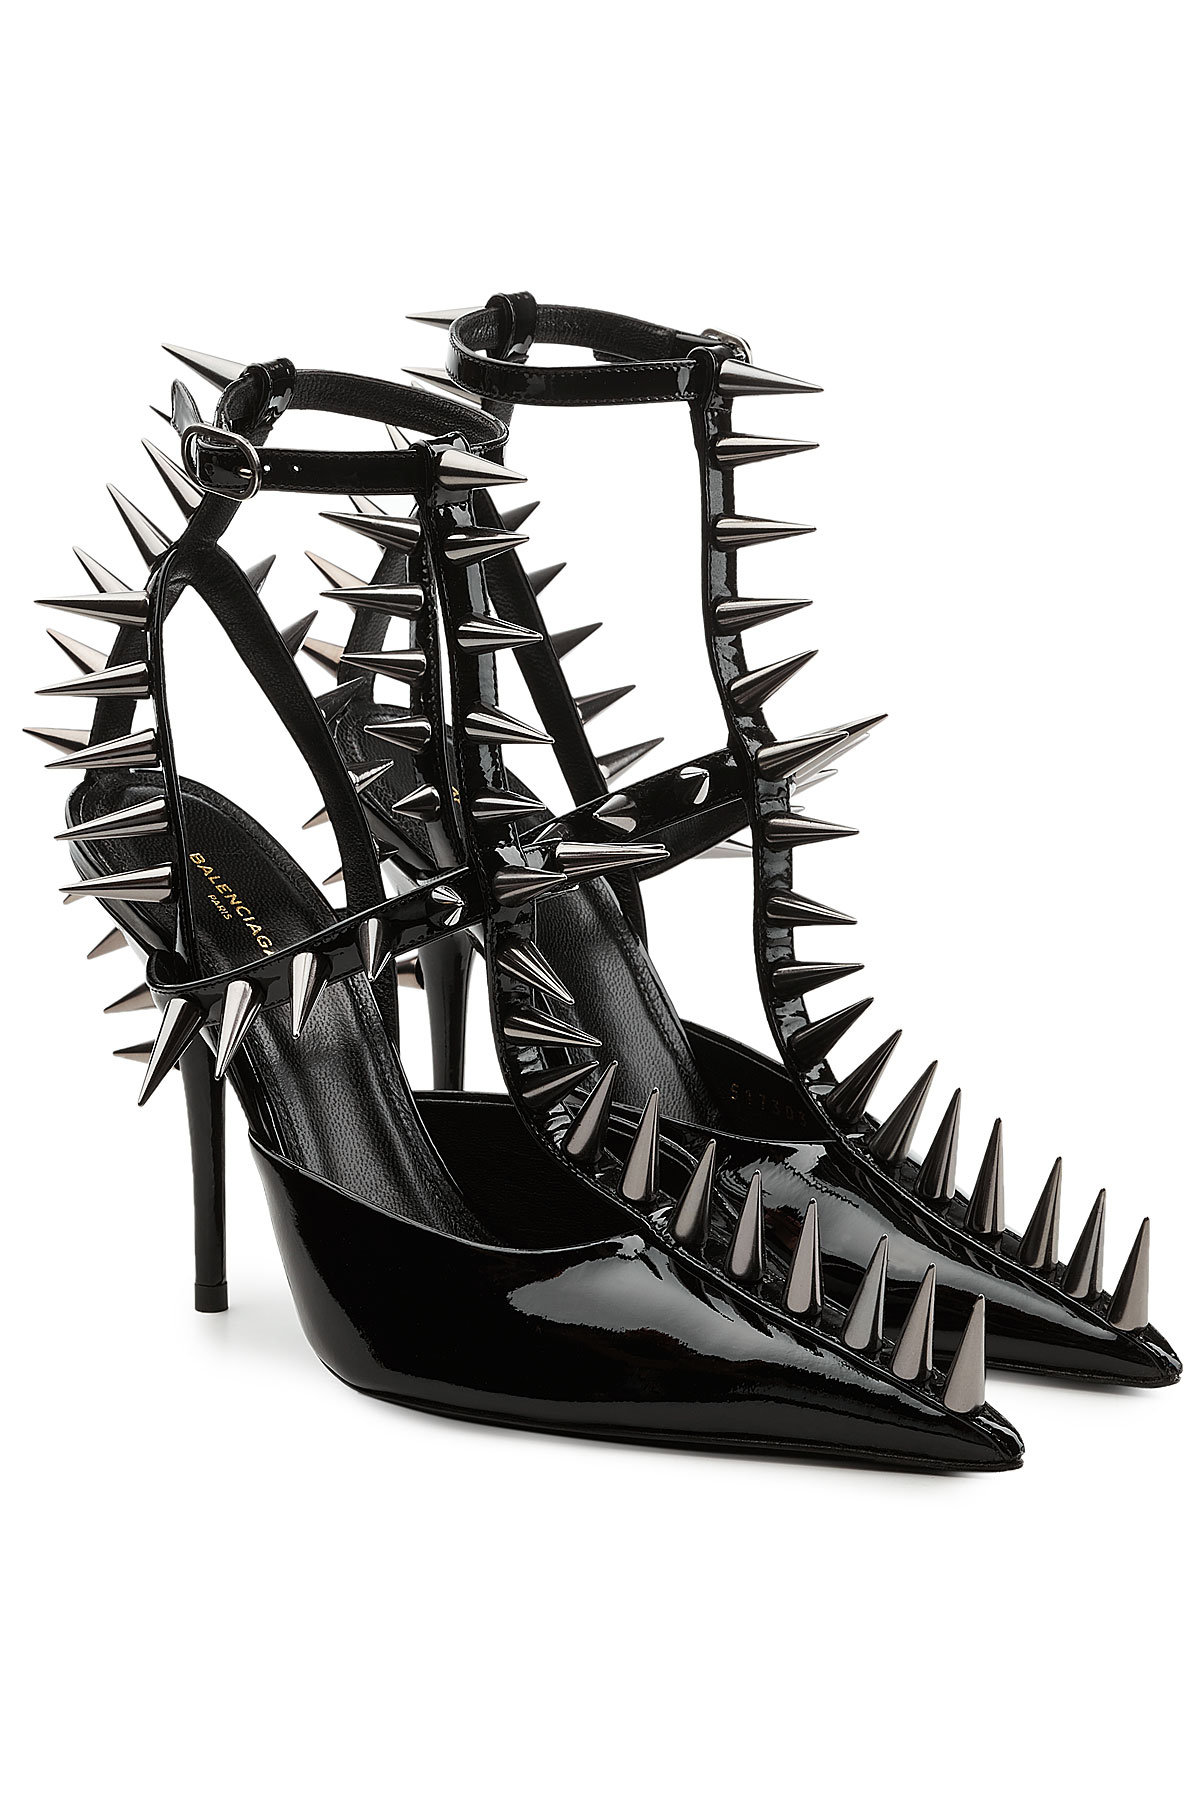 BalenciagaPatent Leather Pumps with Spike Embellishment Gr. IT 38 2yXlaNvE